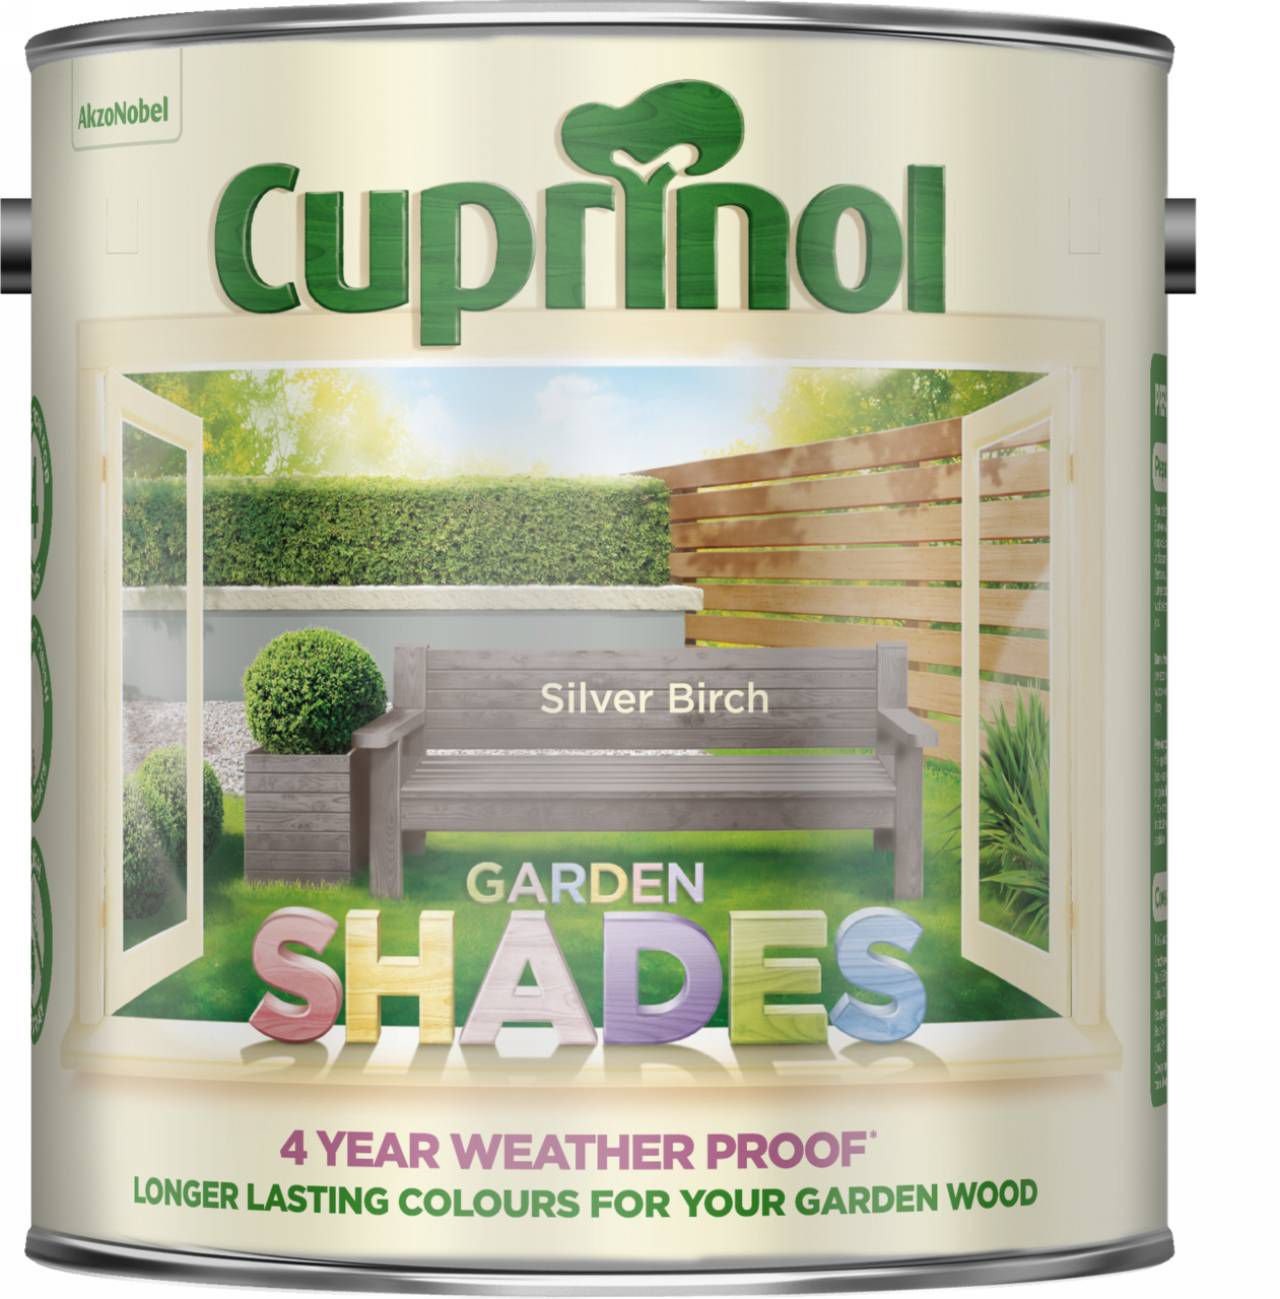 Winsome Cuprinol Garden Shades Silver Birch Matt Garden Wood Paint L  With Handsome Cuprinol Garden Shades Silver Birch Matt Garden Wood Paint L   Departments  Diy At Bq With Delightful Large Garden Sheds Also Garden Chimineas In Addition Jesmond Gardens Primary School And Walworth Garden Farm As Well As Homemade Garden Furniture Additionally Thrigby Wildlife Gardens From Diycom With   Handsome Cuprinol Garden Shades Silver Birch Matt Garden Wood Paint L  With Delightful Cuprinol Garden Shades Silver Birch Matt Garden Wood Paint L   Departments  Diy At Bq And Winsome Large Garden Sheds Also Garden Chimineas In Addition Jesmond Gardens Primary School From Diycom